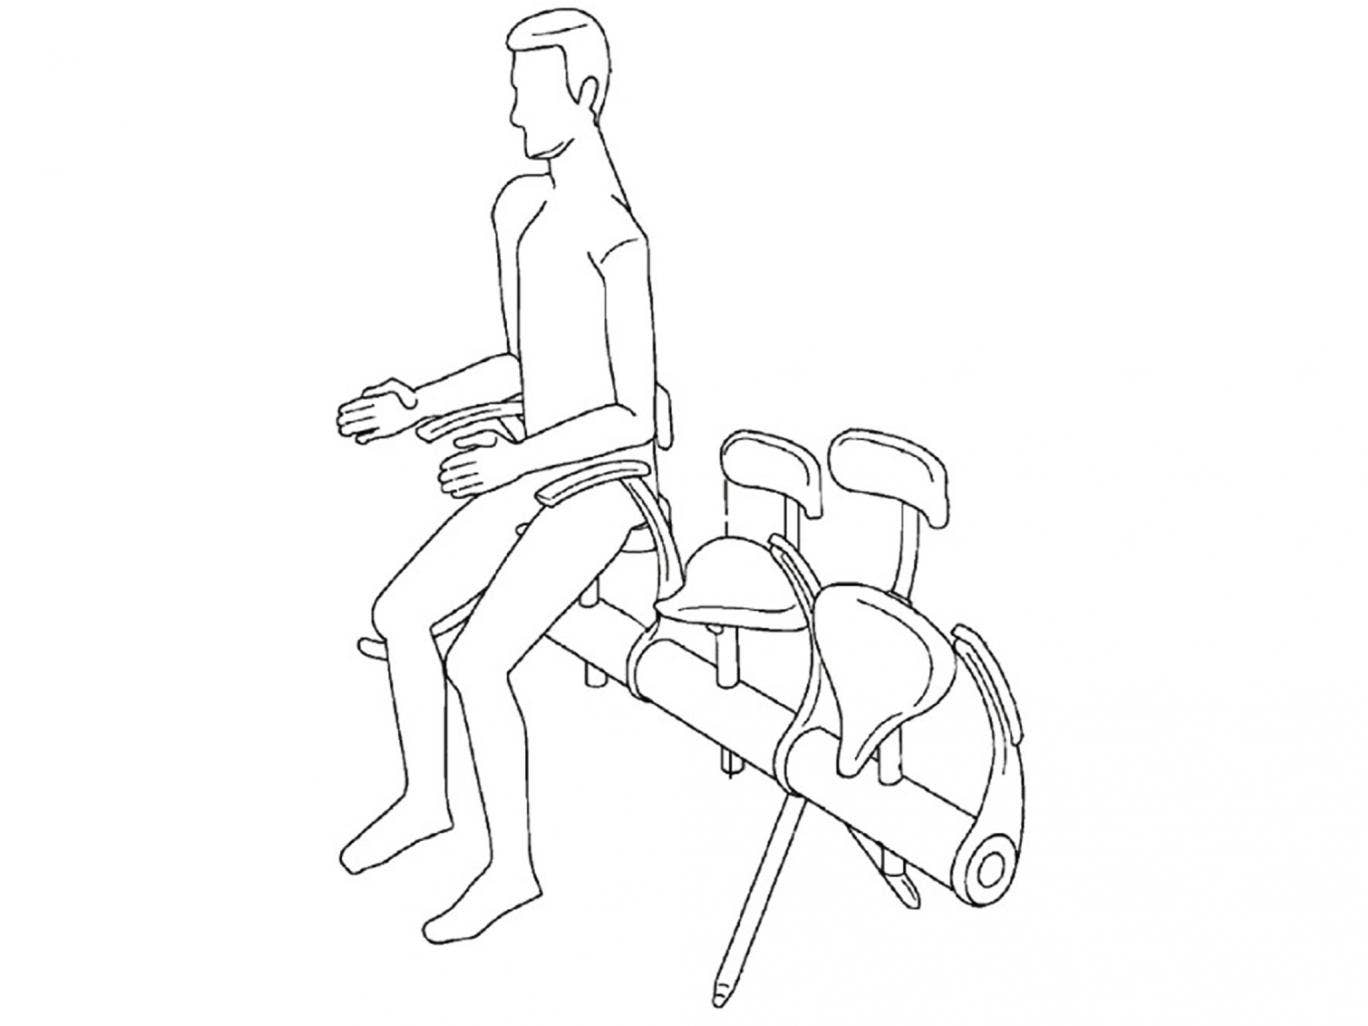 A diagram of the seat proposals from the Airbus patent application